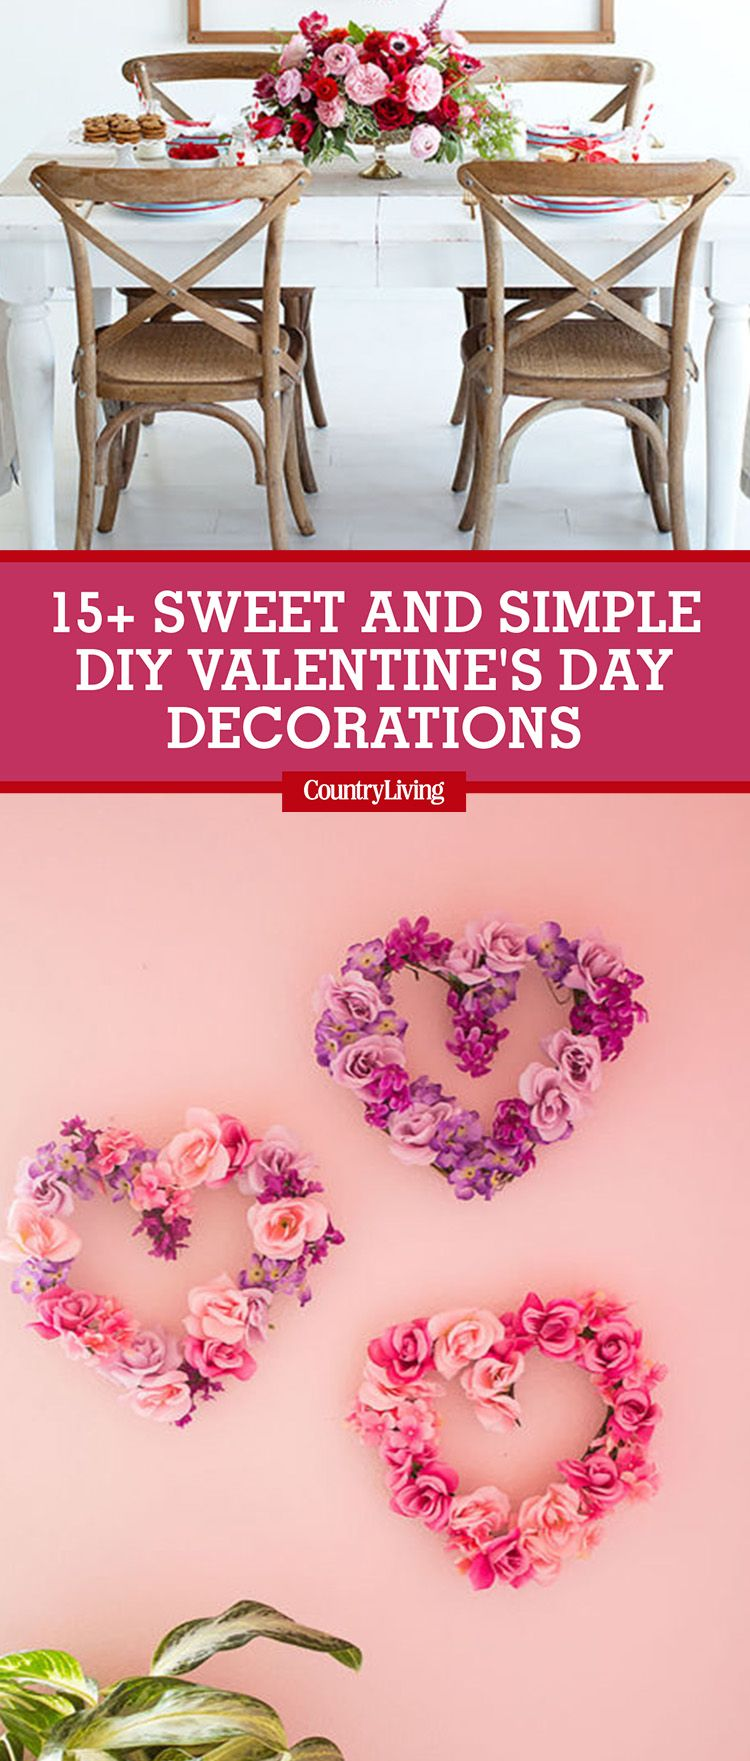 18 sweet and simple diy valentines day decorations valentine decor